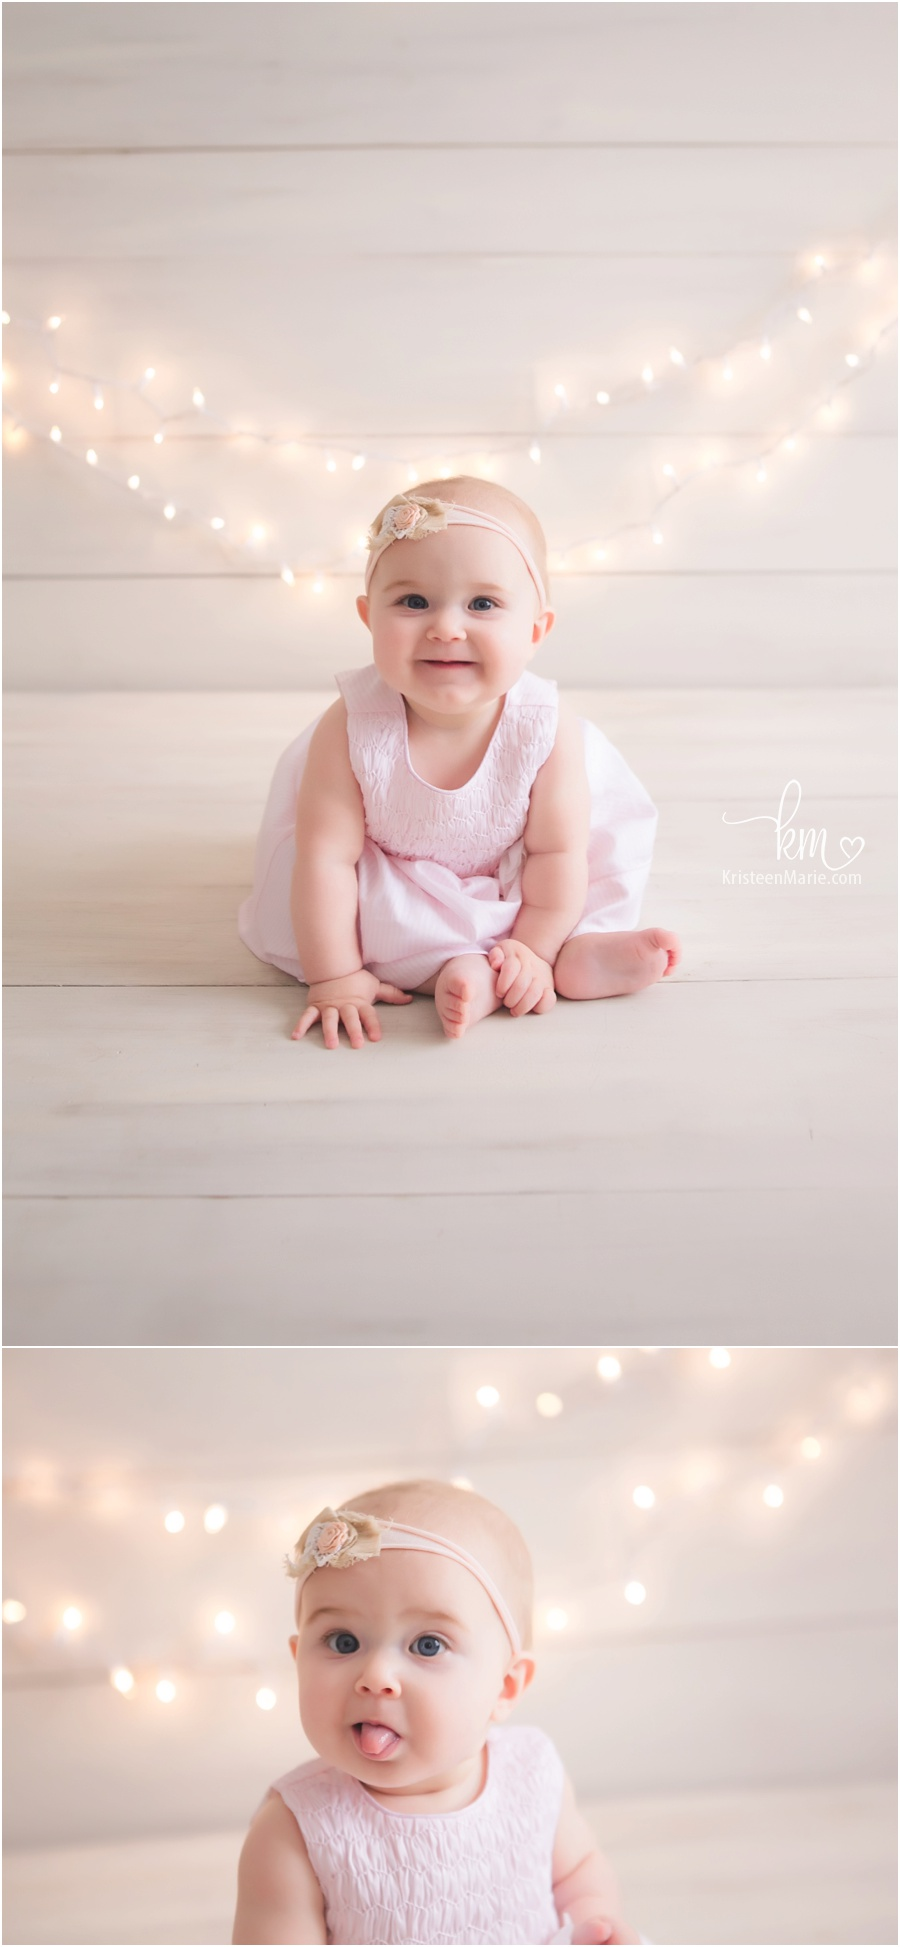 Little baby girl with lights behind her